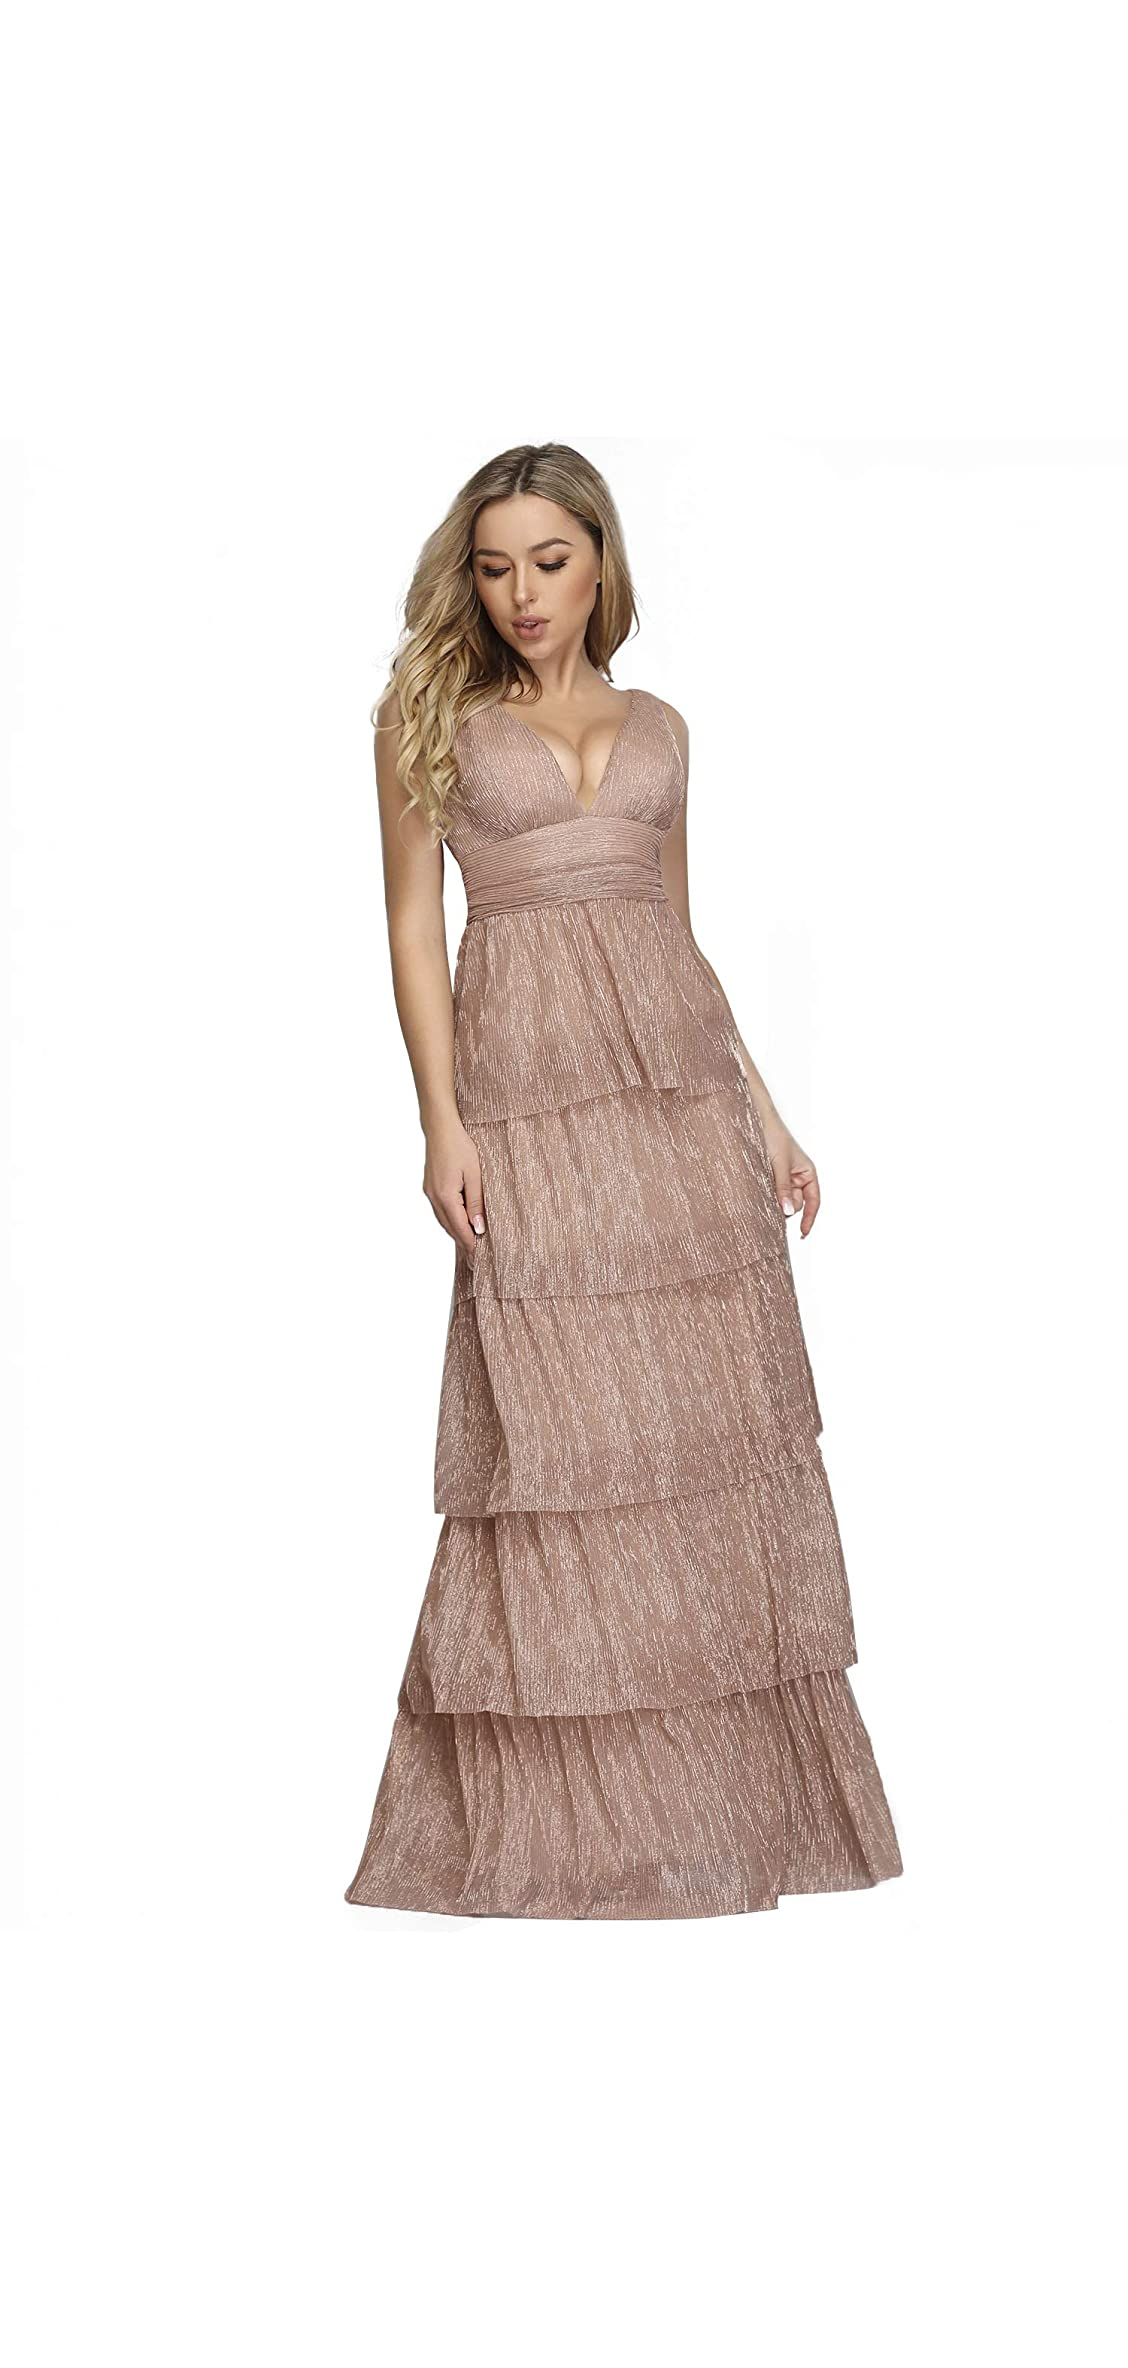 Women's Double V-neck Tiered Ruffle Evening Party